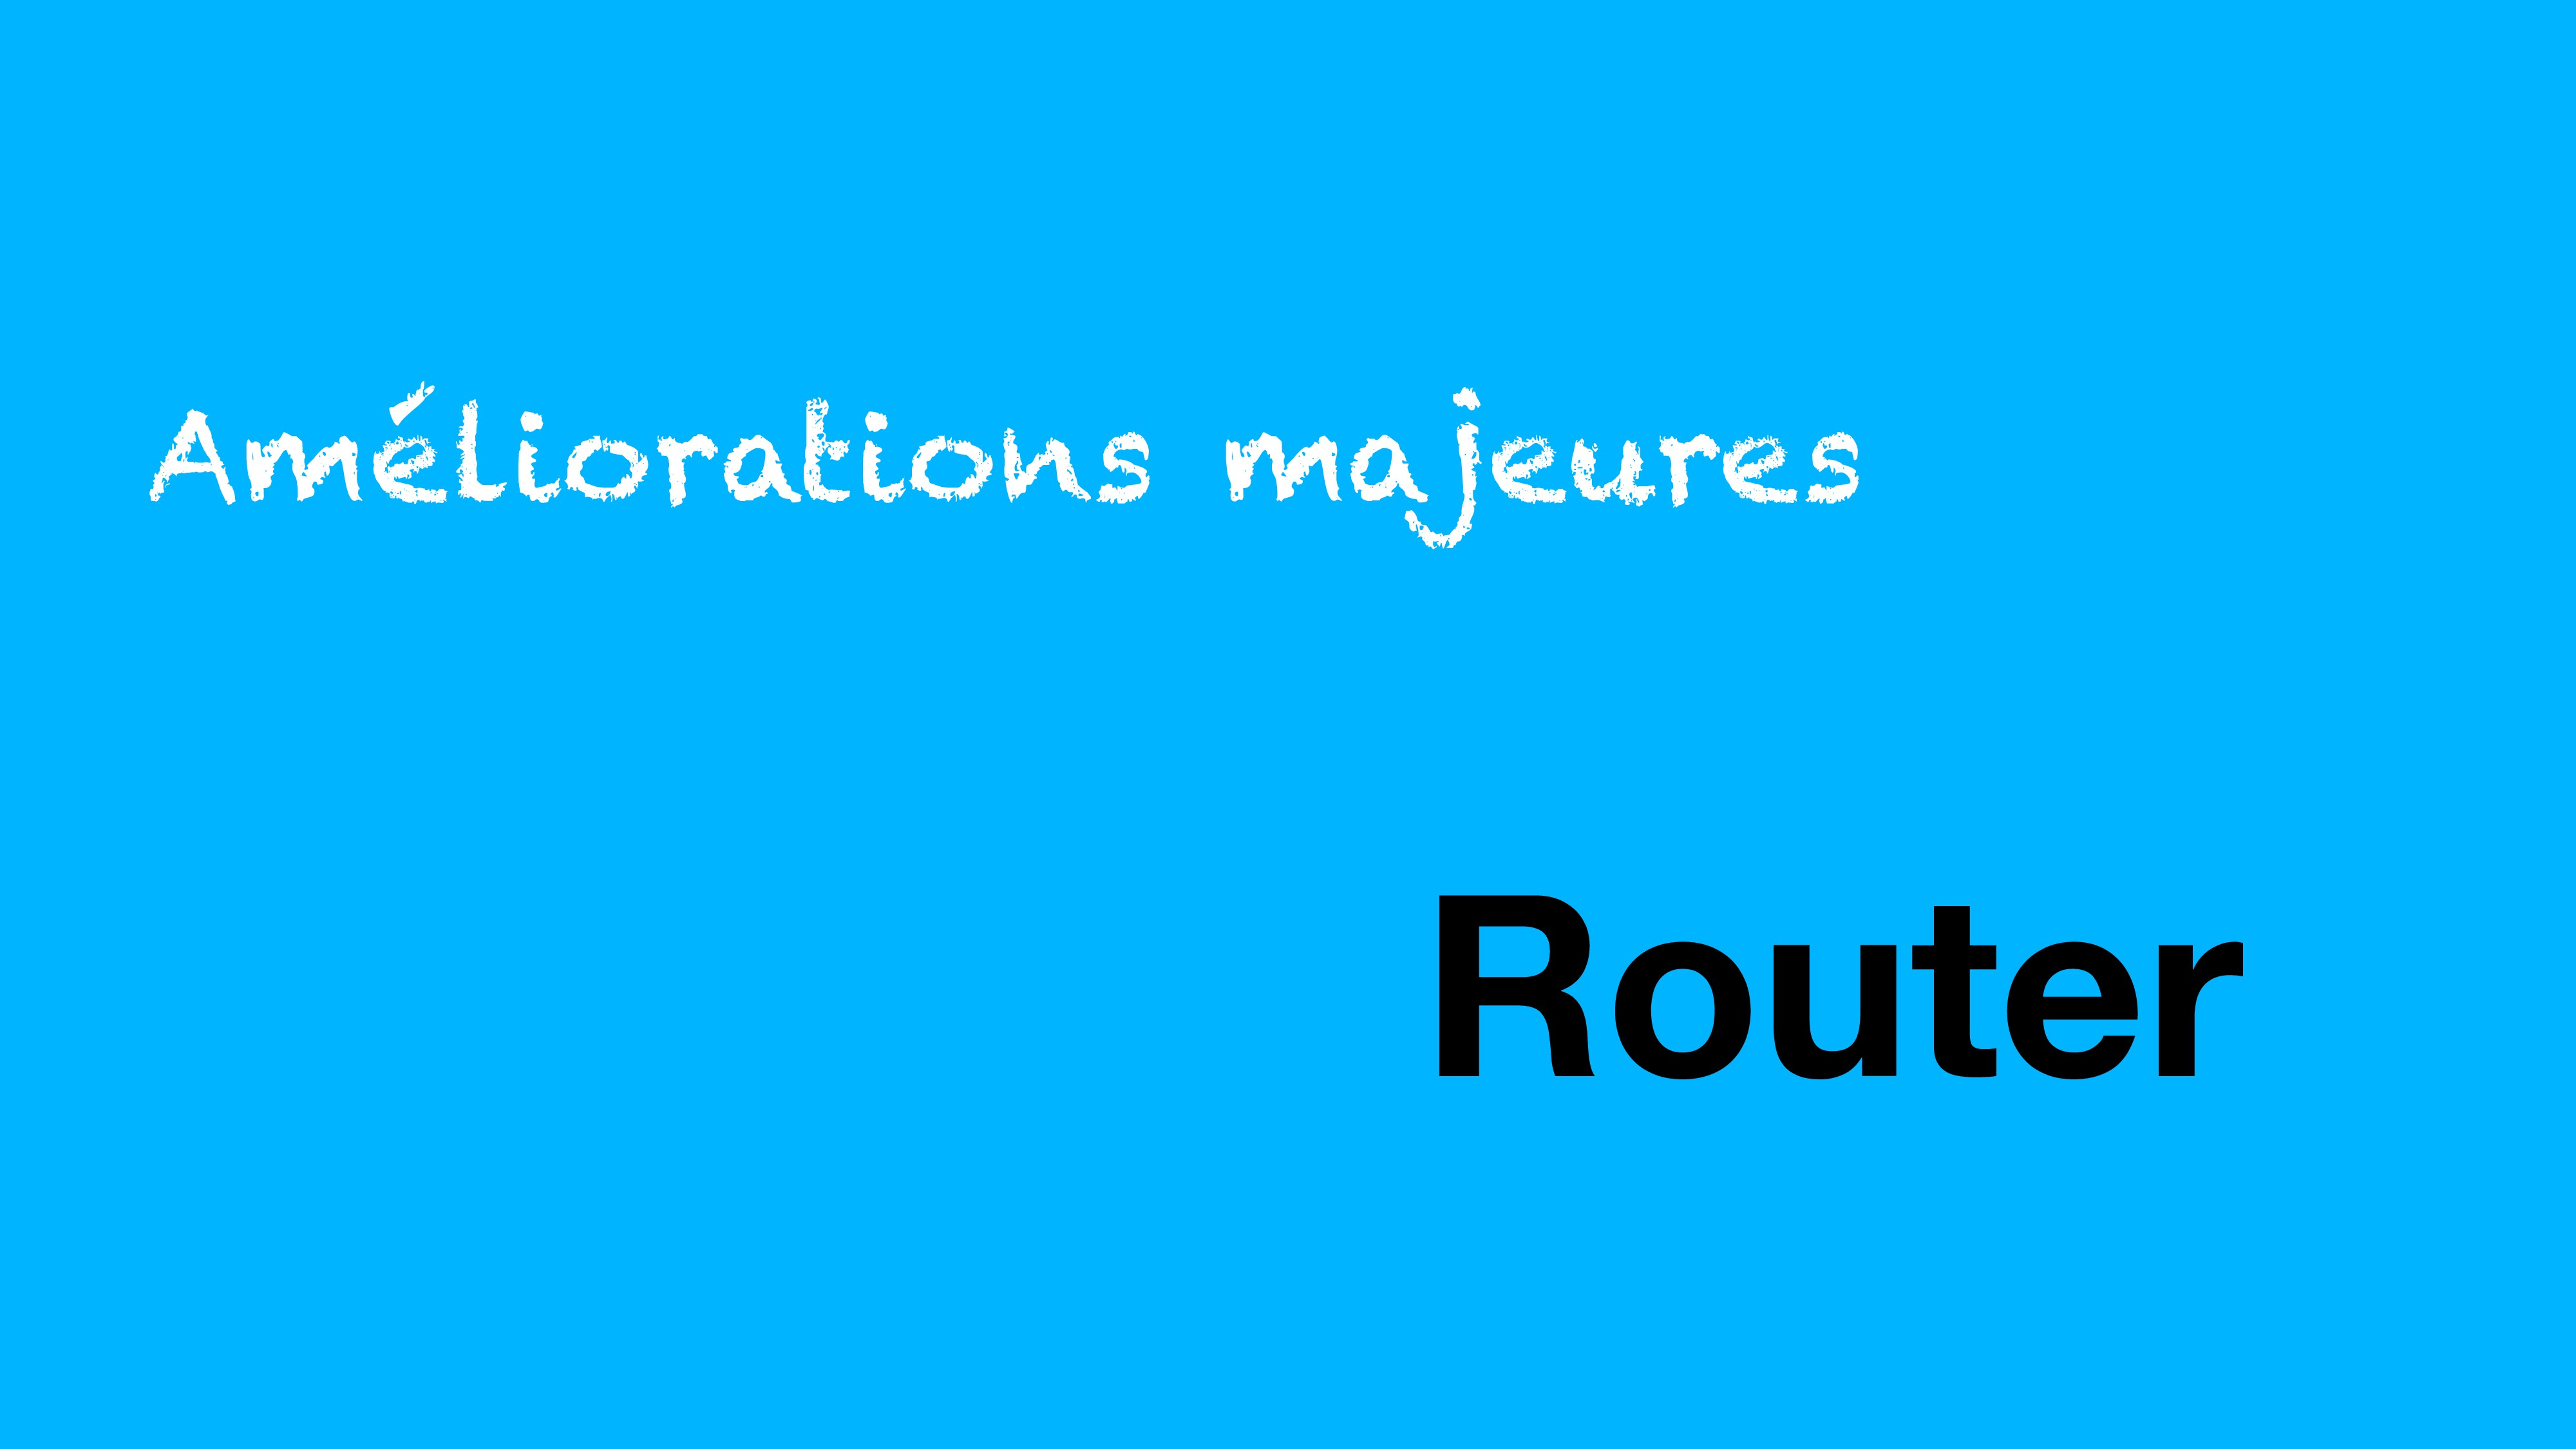 Améliorations majeures Router